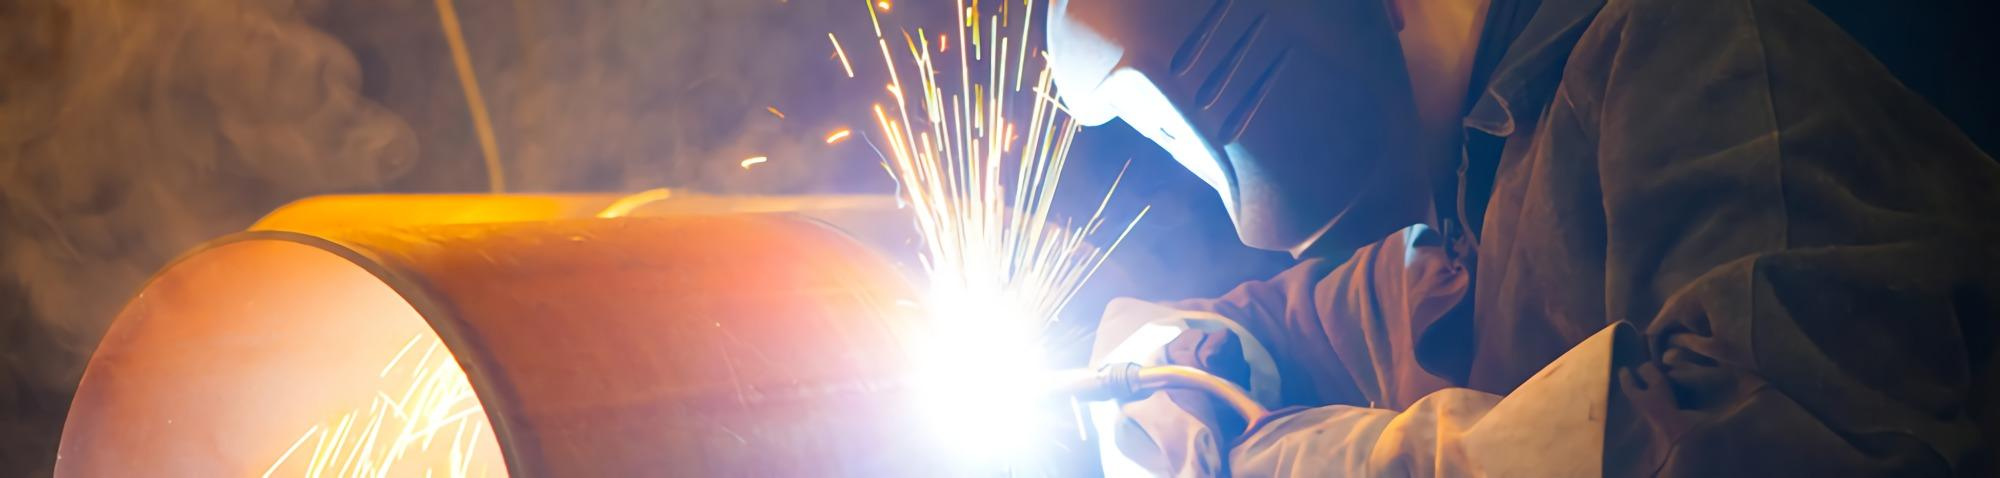 Welder Training Arc Welding